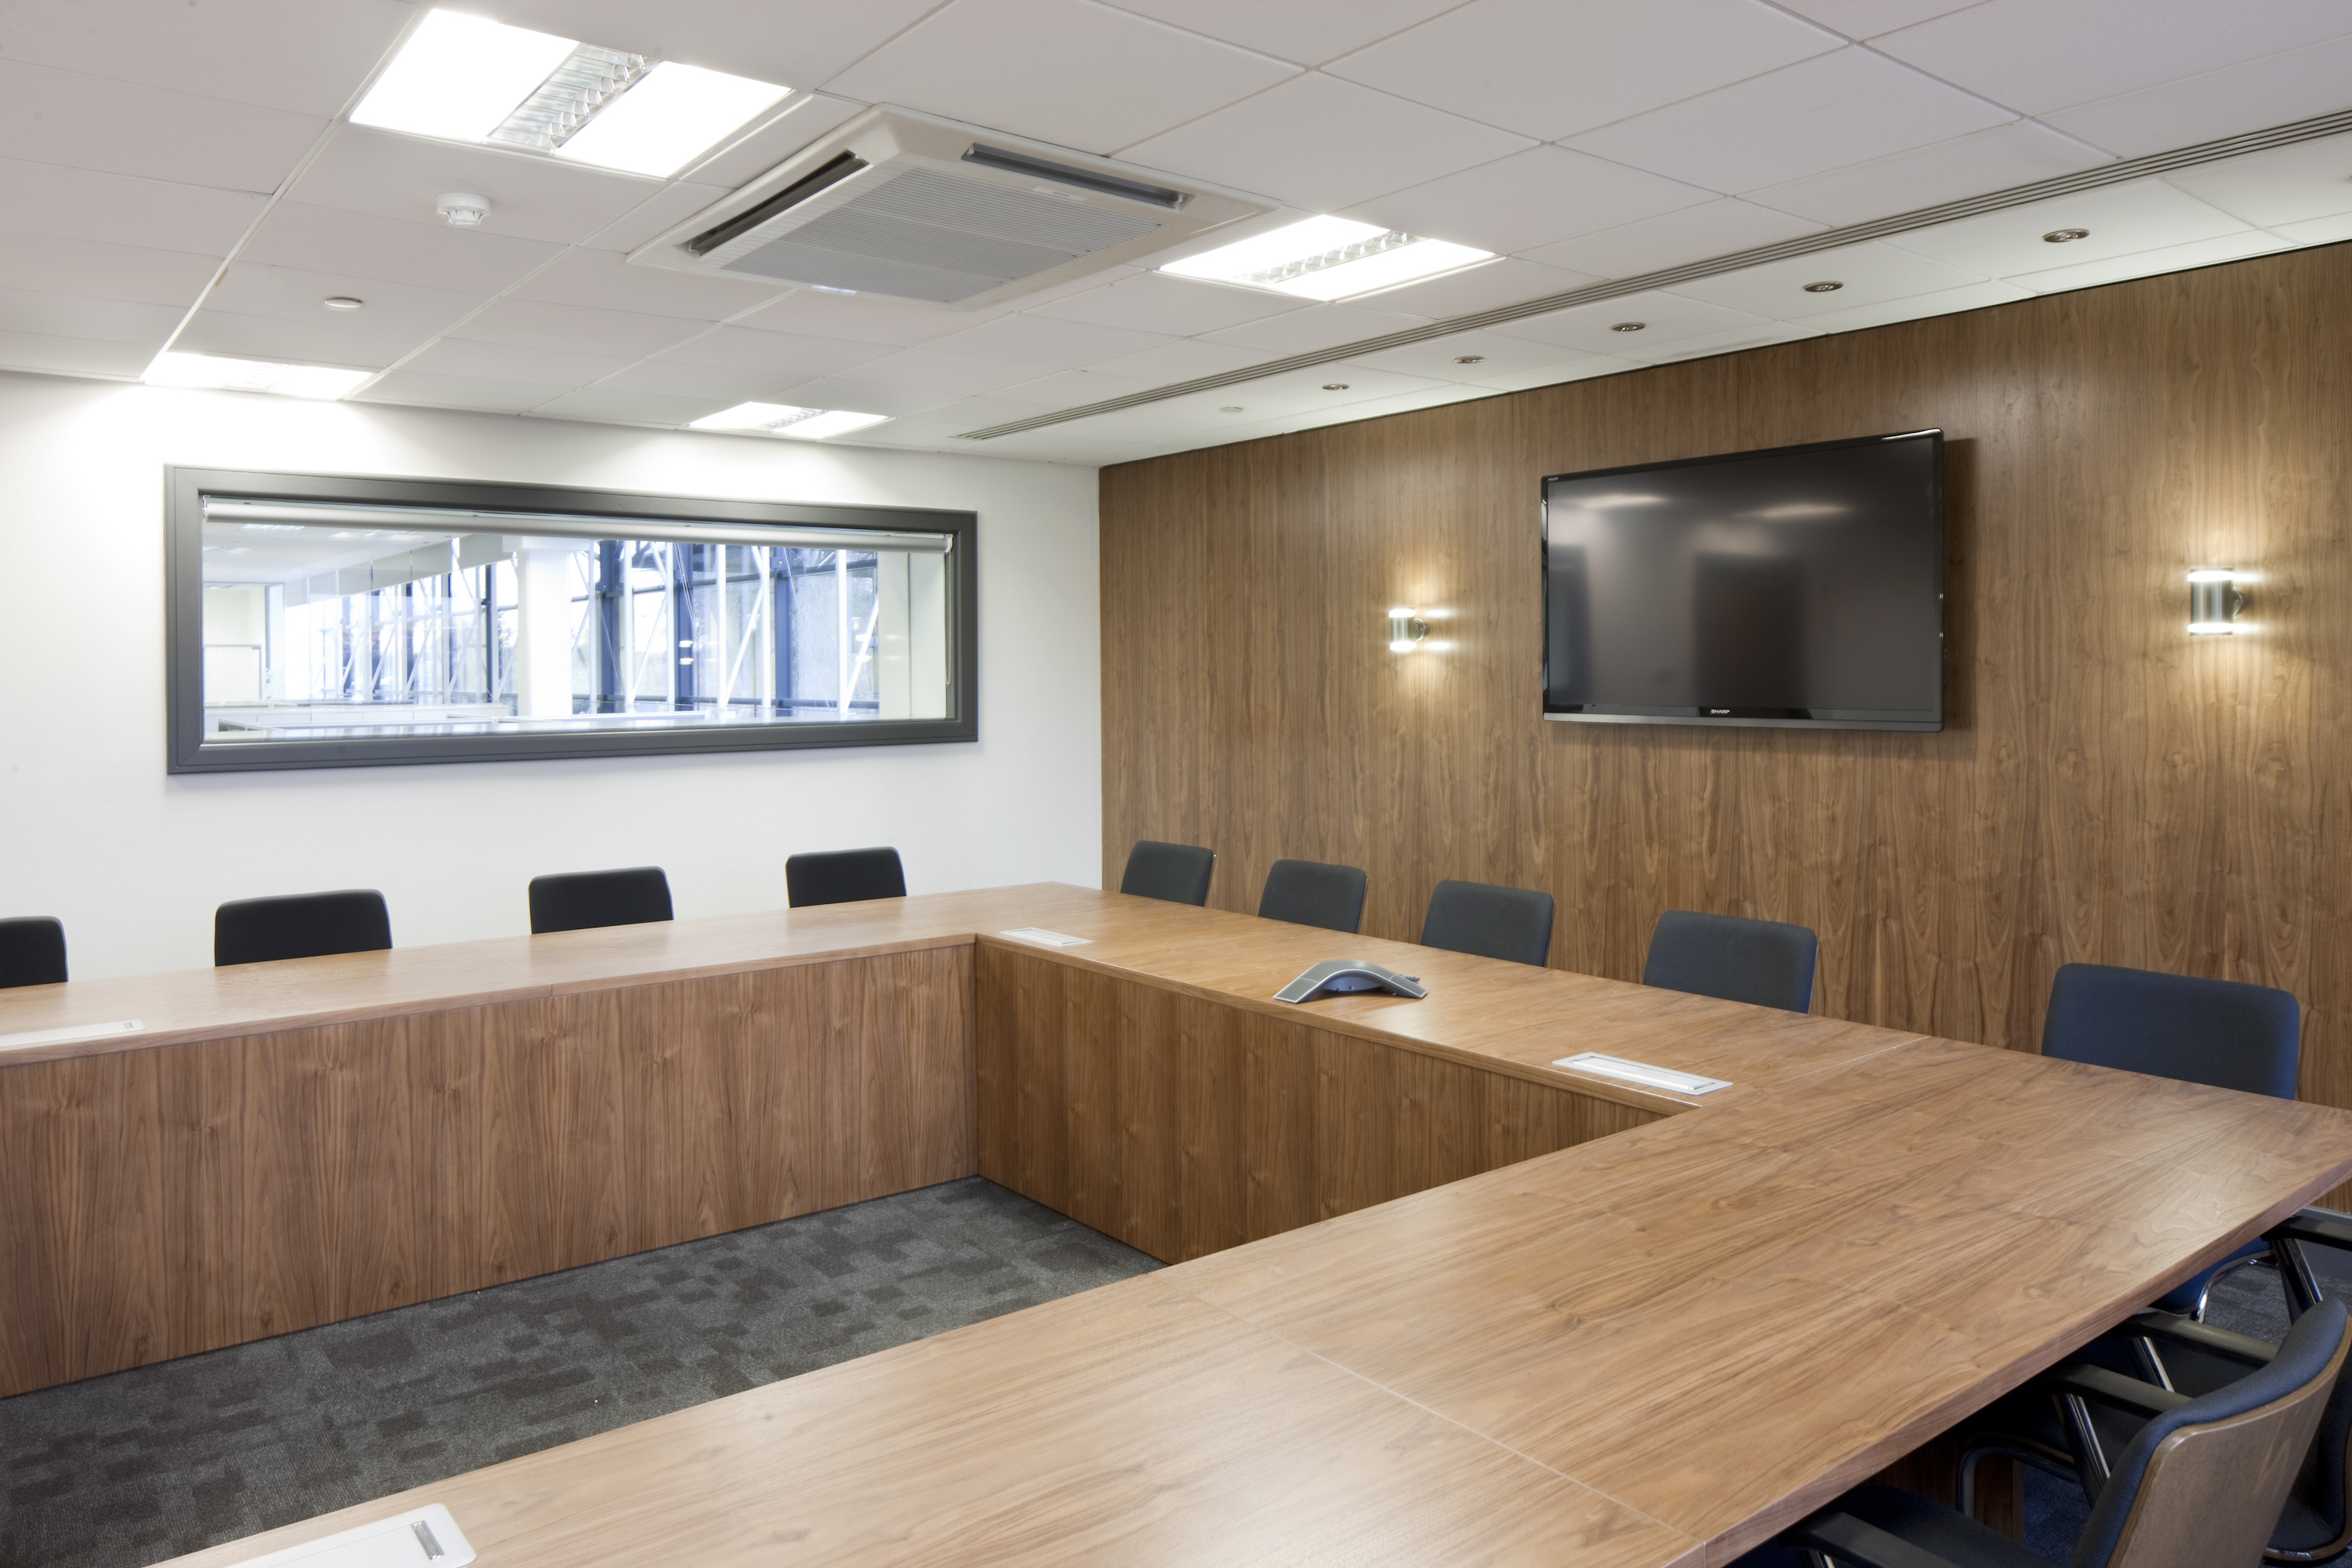 BESPOKE SUITE OF TABLES AND WALL PANELLING MANUFACTURED BY EBORCRAFT